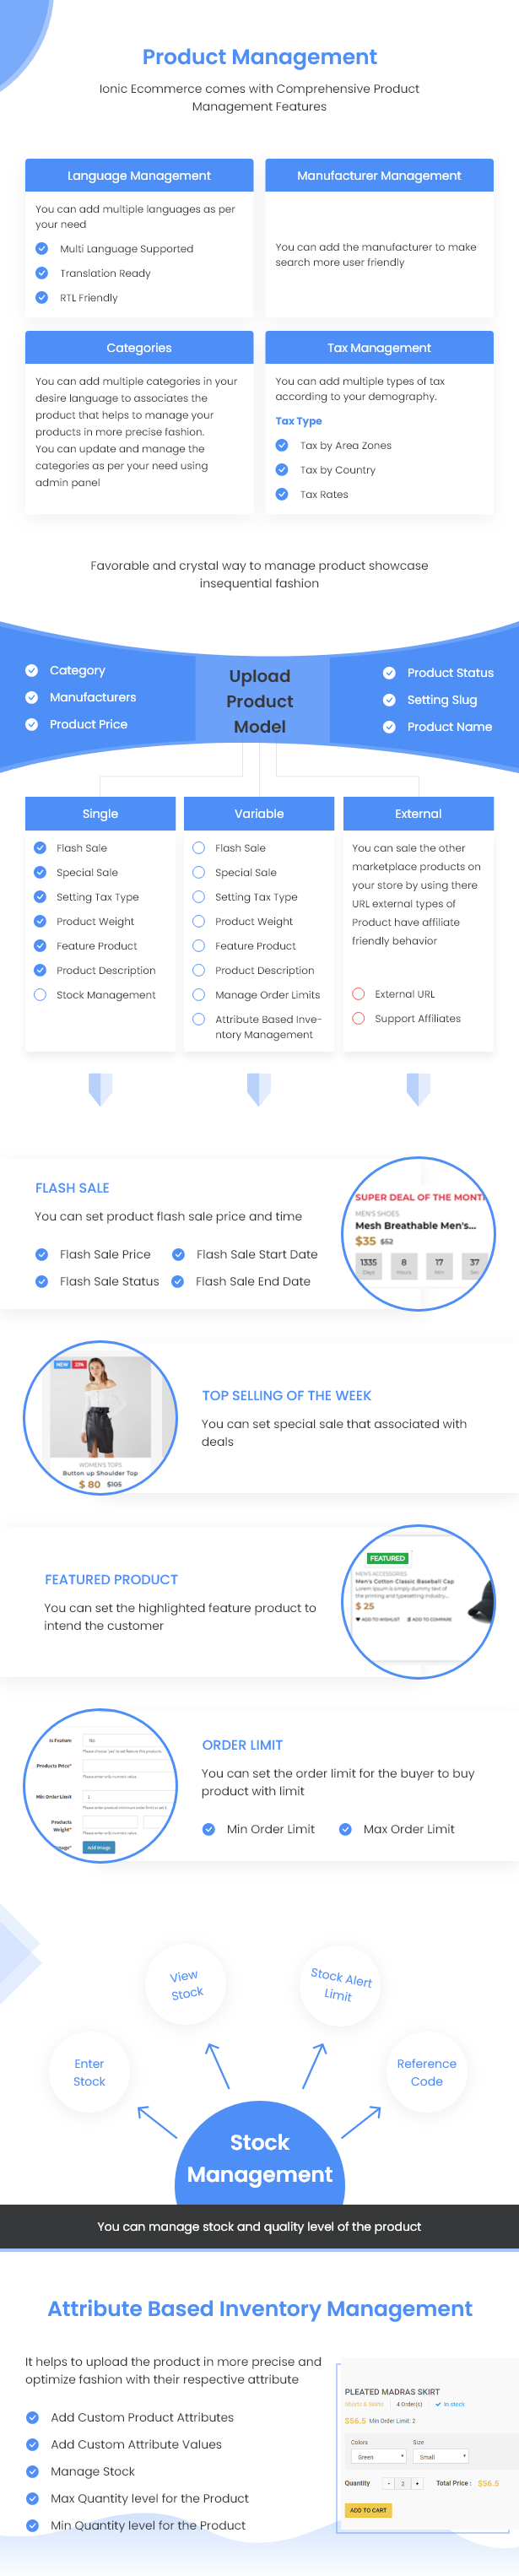 Ionic5 Ecommerce - Universal iOS & Android Ecommerce / Store Full Mobile App with Laravel CMS - 25